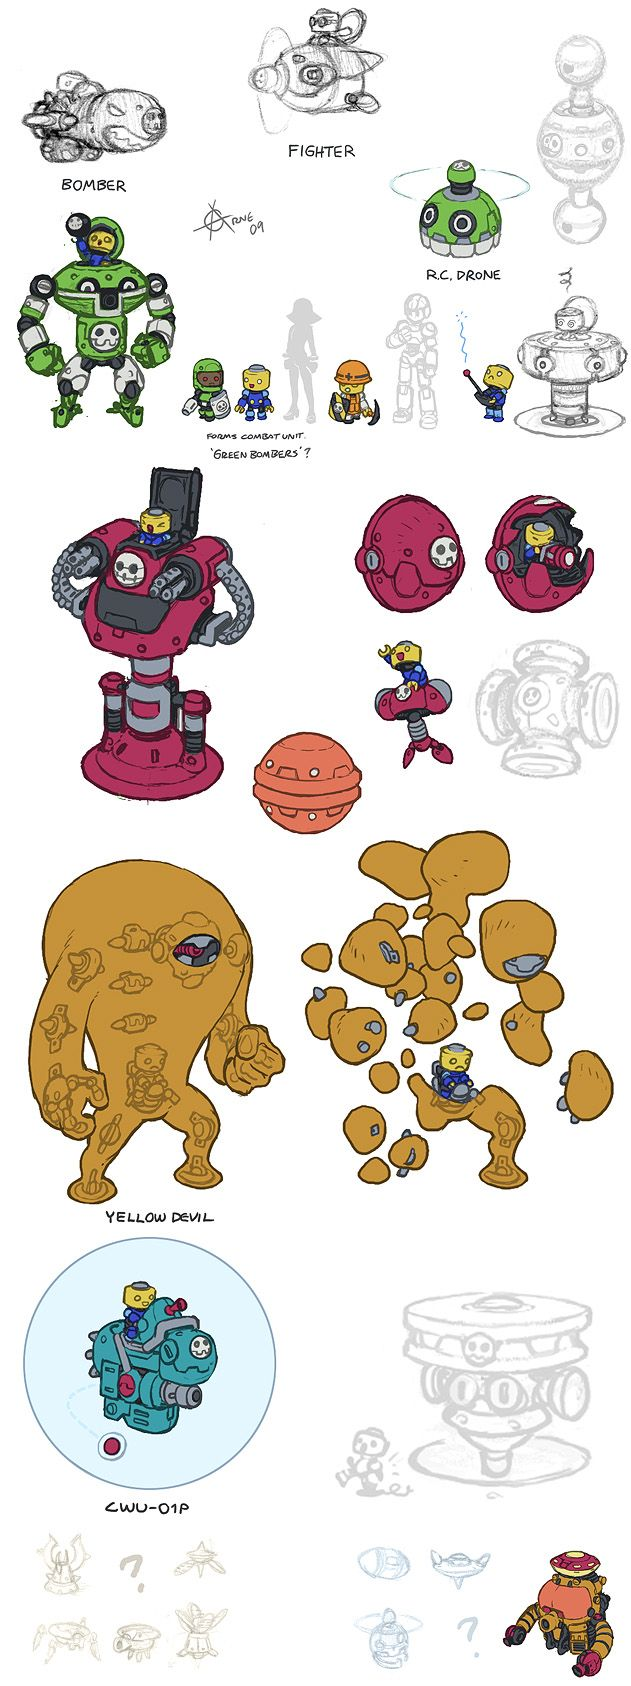 Megaman 1 Legends Bonne Bots